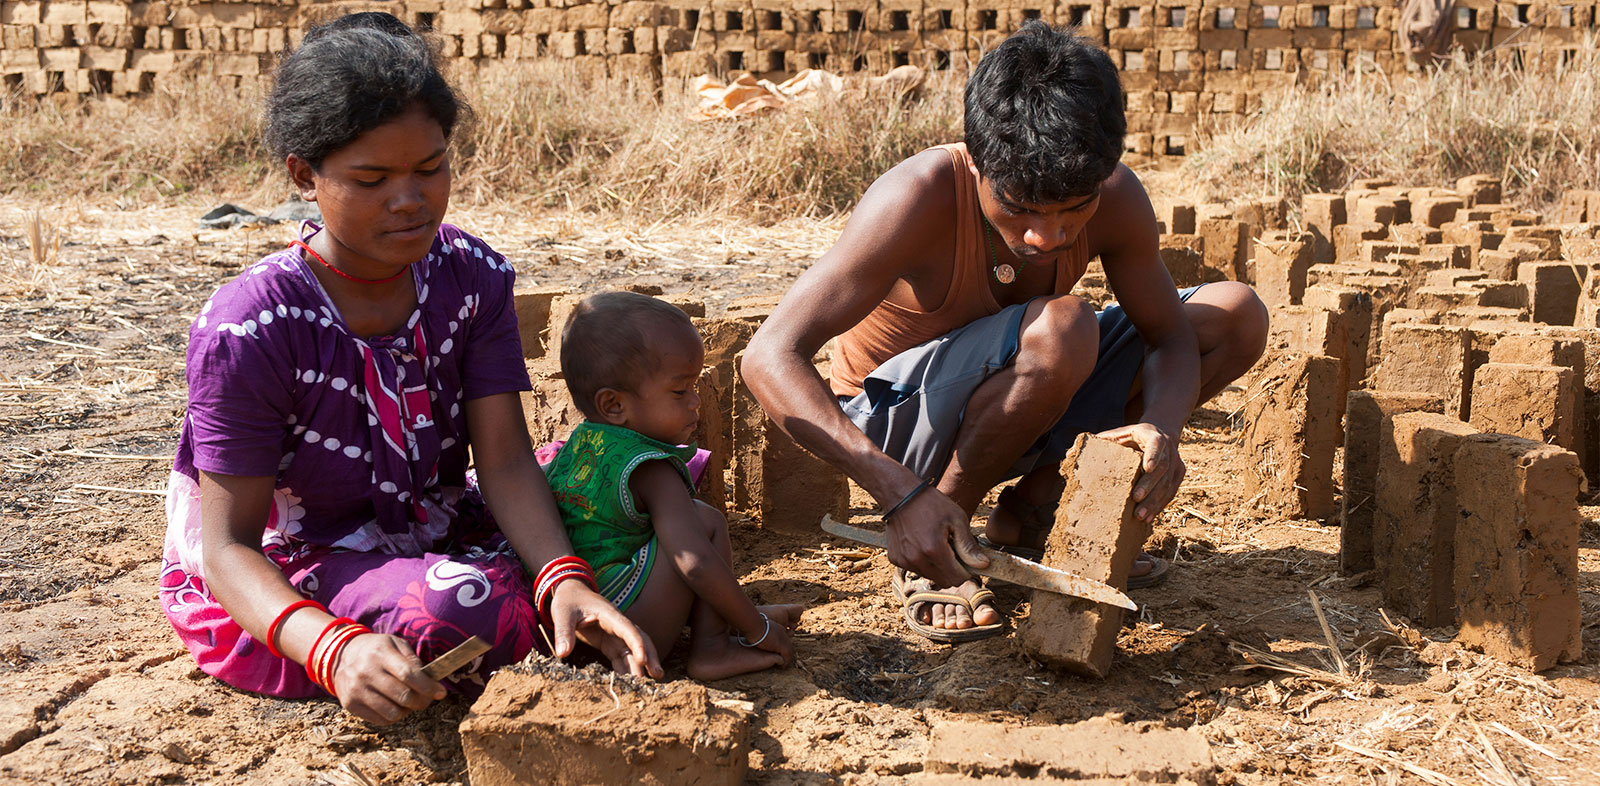 This woman works alongside her husband to make bricks, bringing her infant with her. Both men and women work hard in rural villages to try to make ends meet.